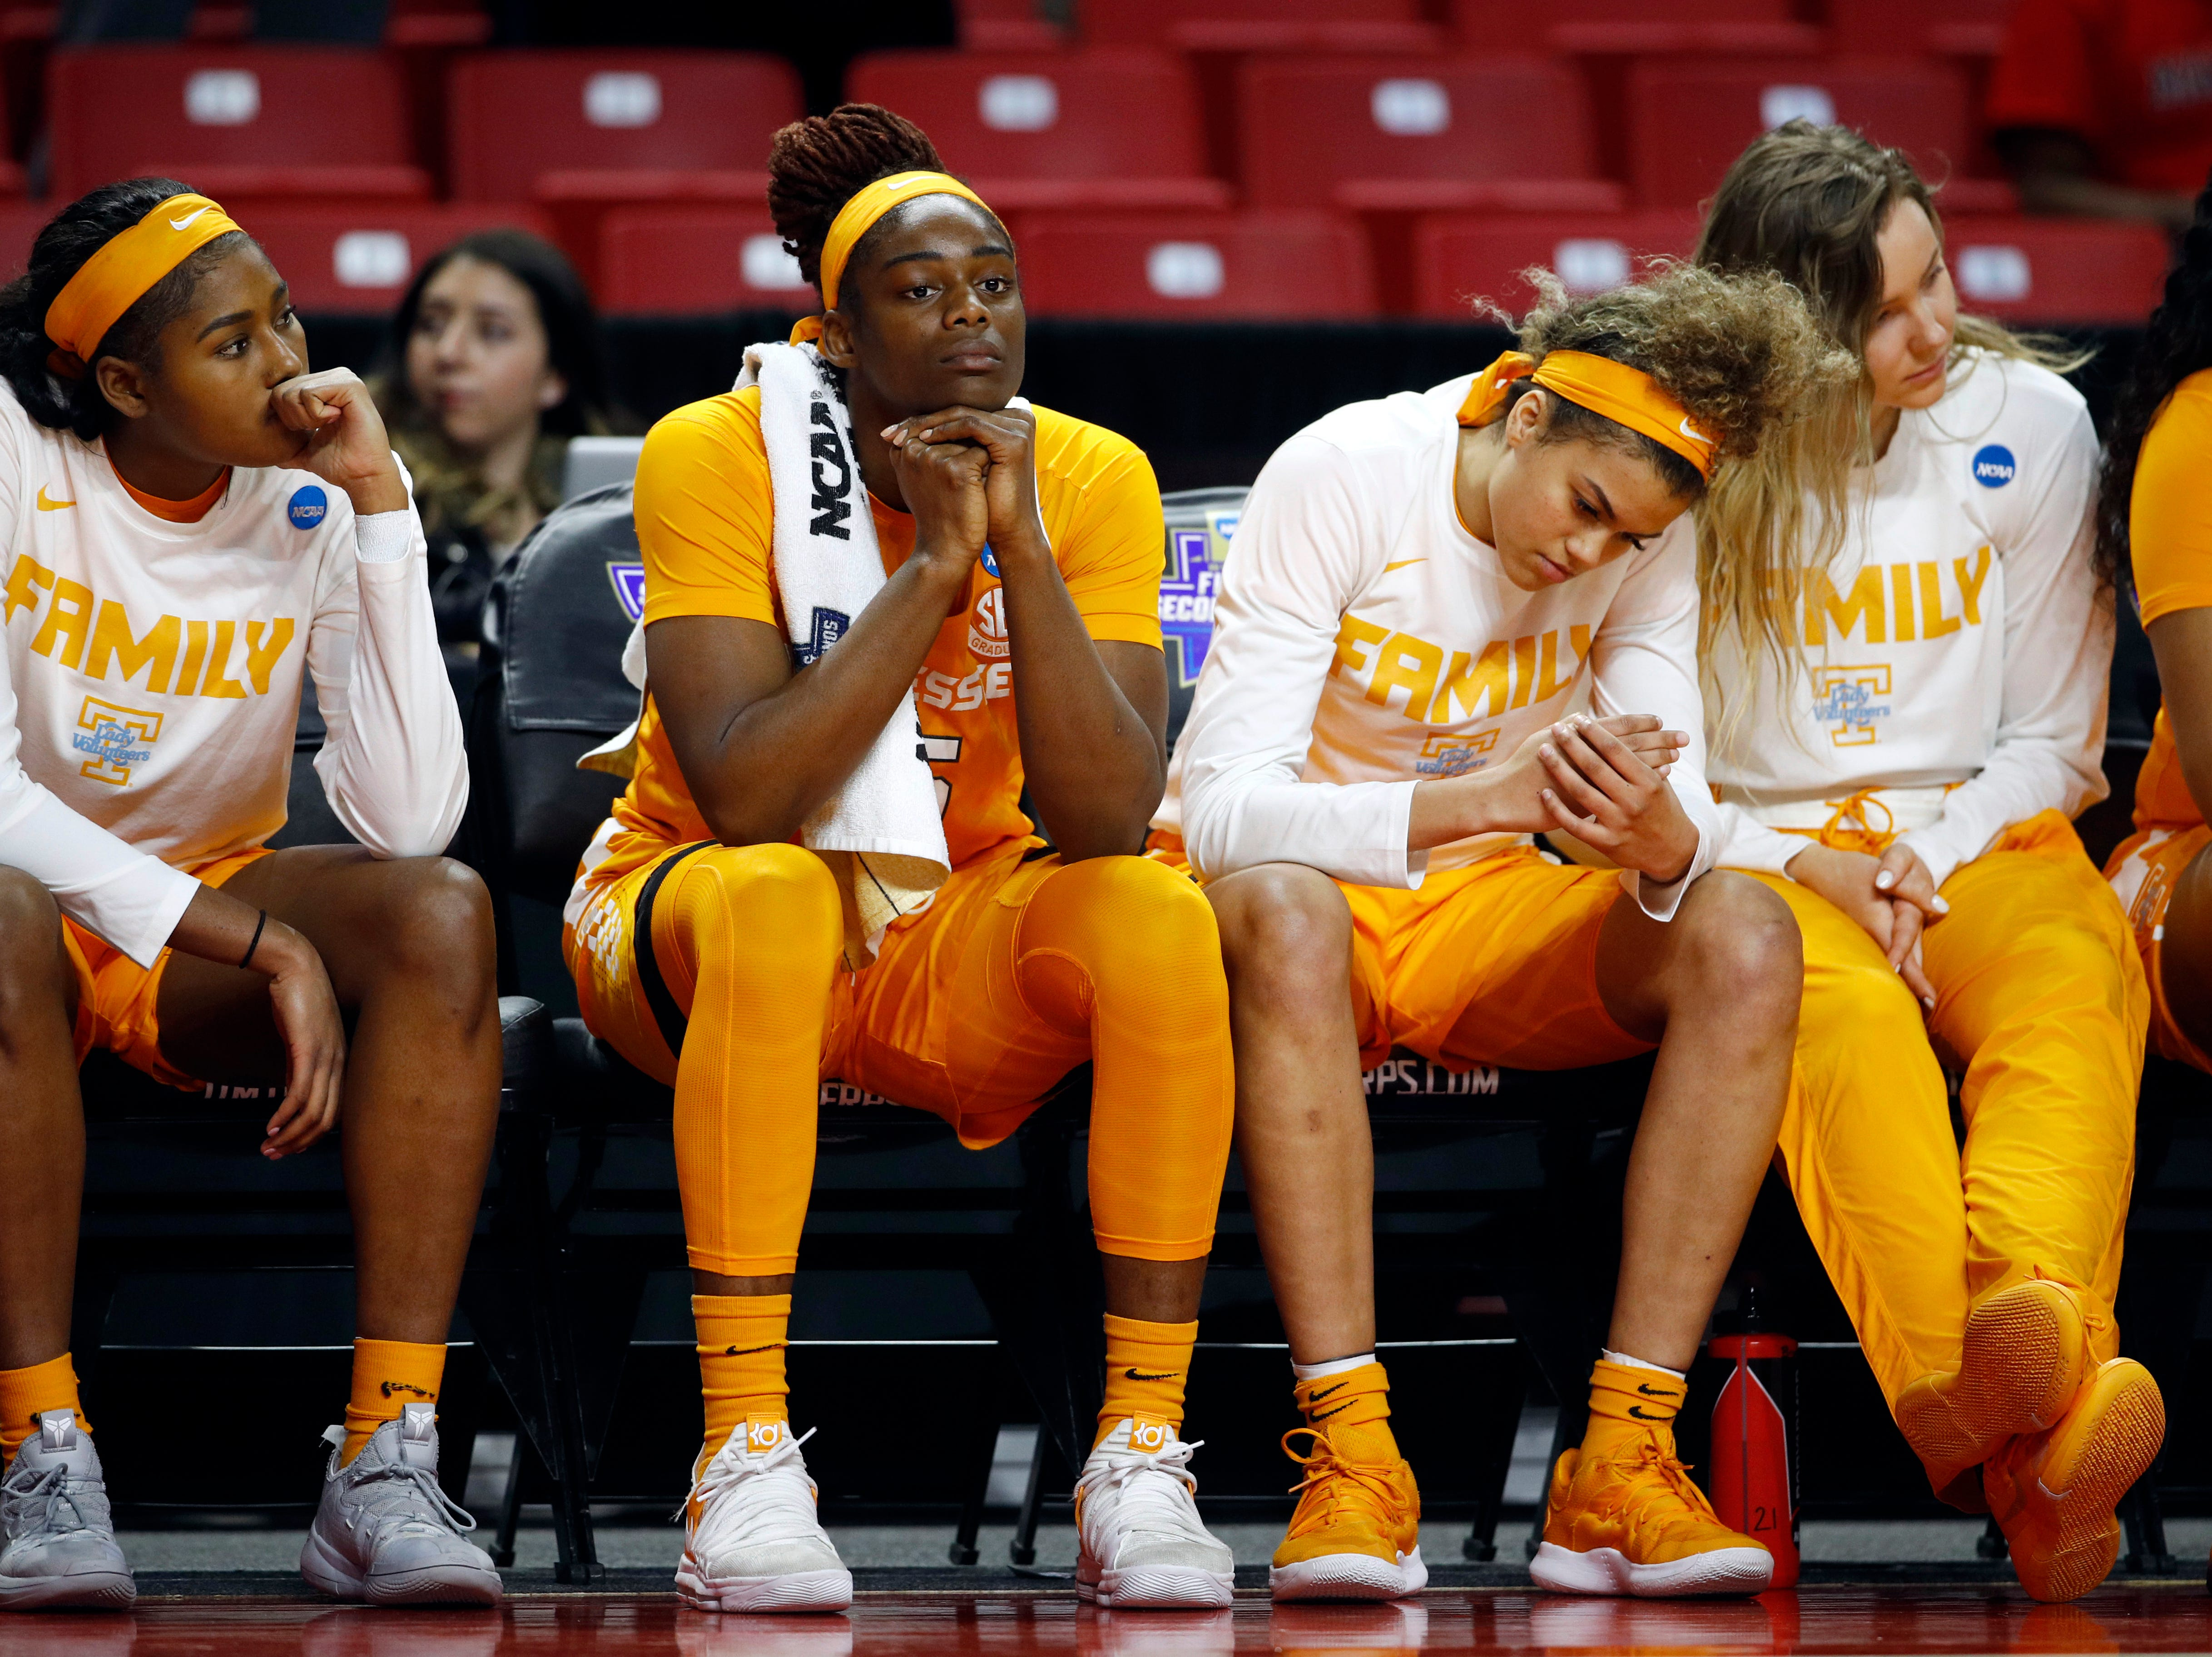 Tennessee players sit on the bench in the final moments of a first-round game against UCLA in the NCAA women's college basketball tournament, Saturday, March 23, 2019, in College Park, Md. UCLA won 89-77.